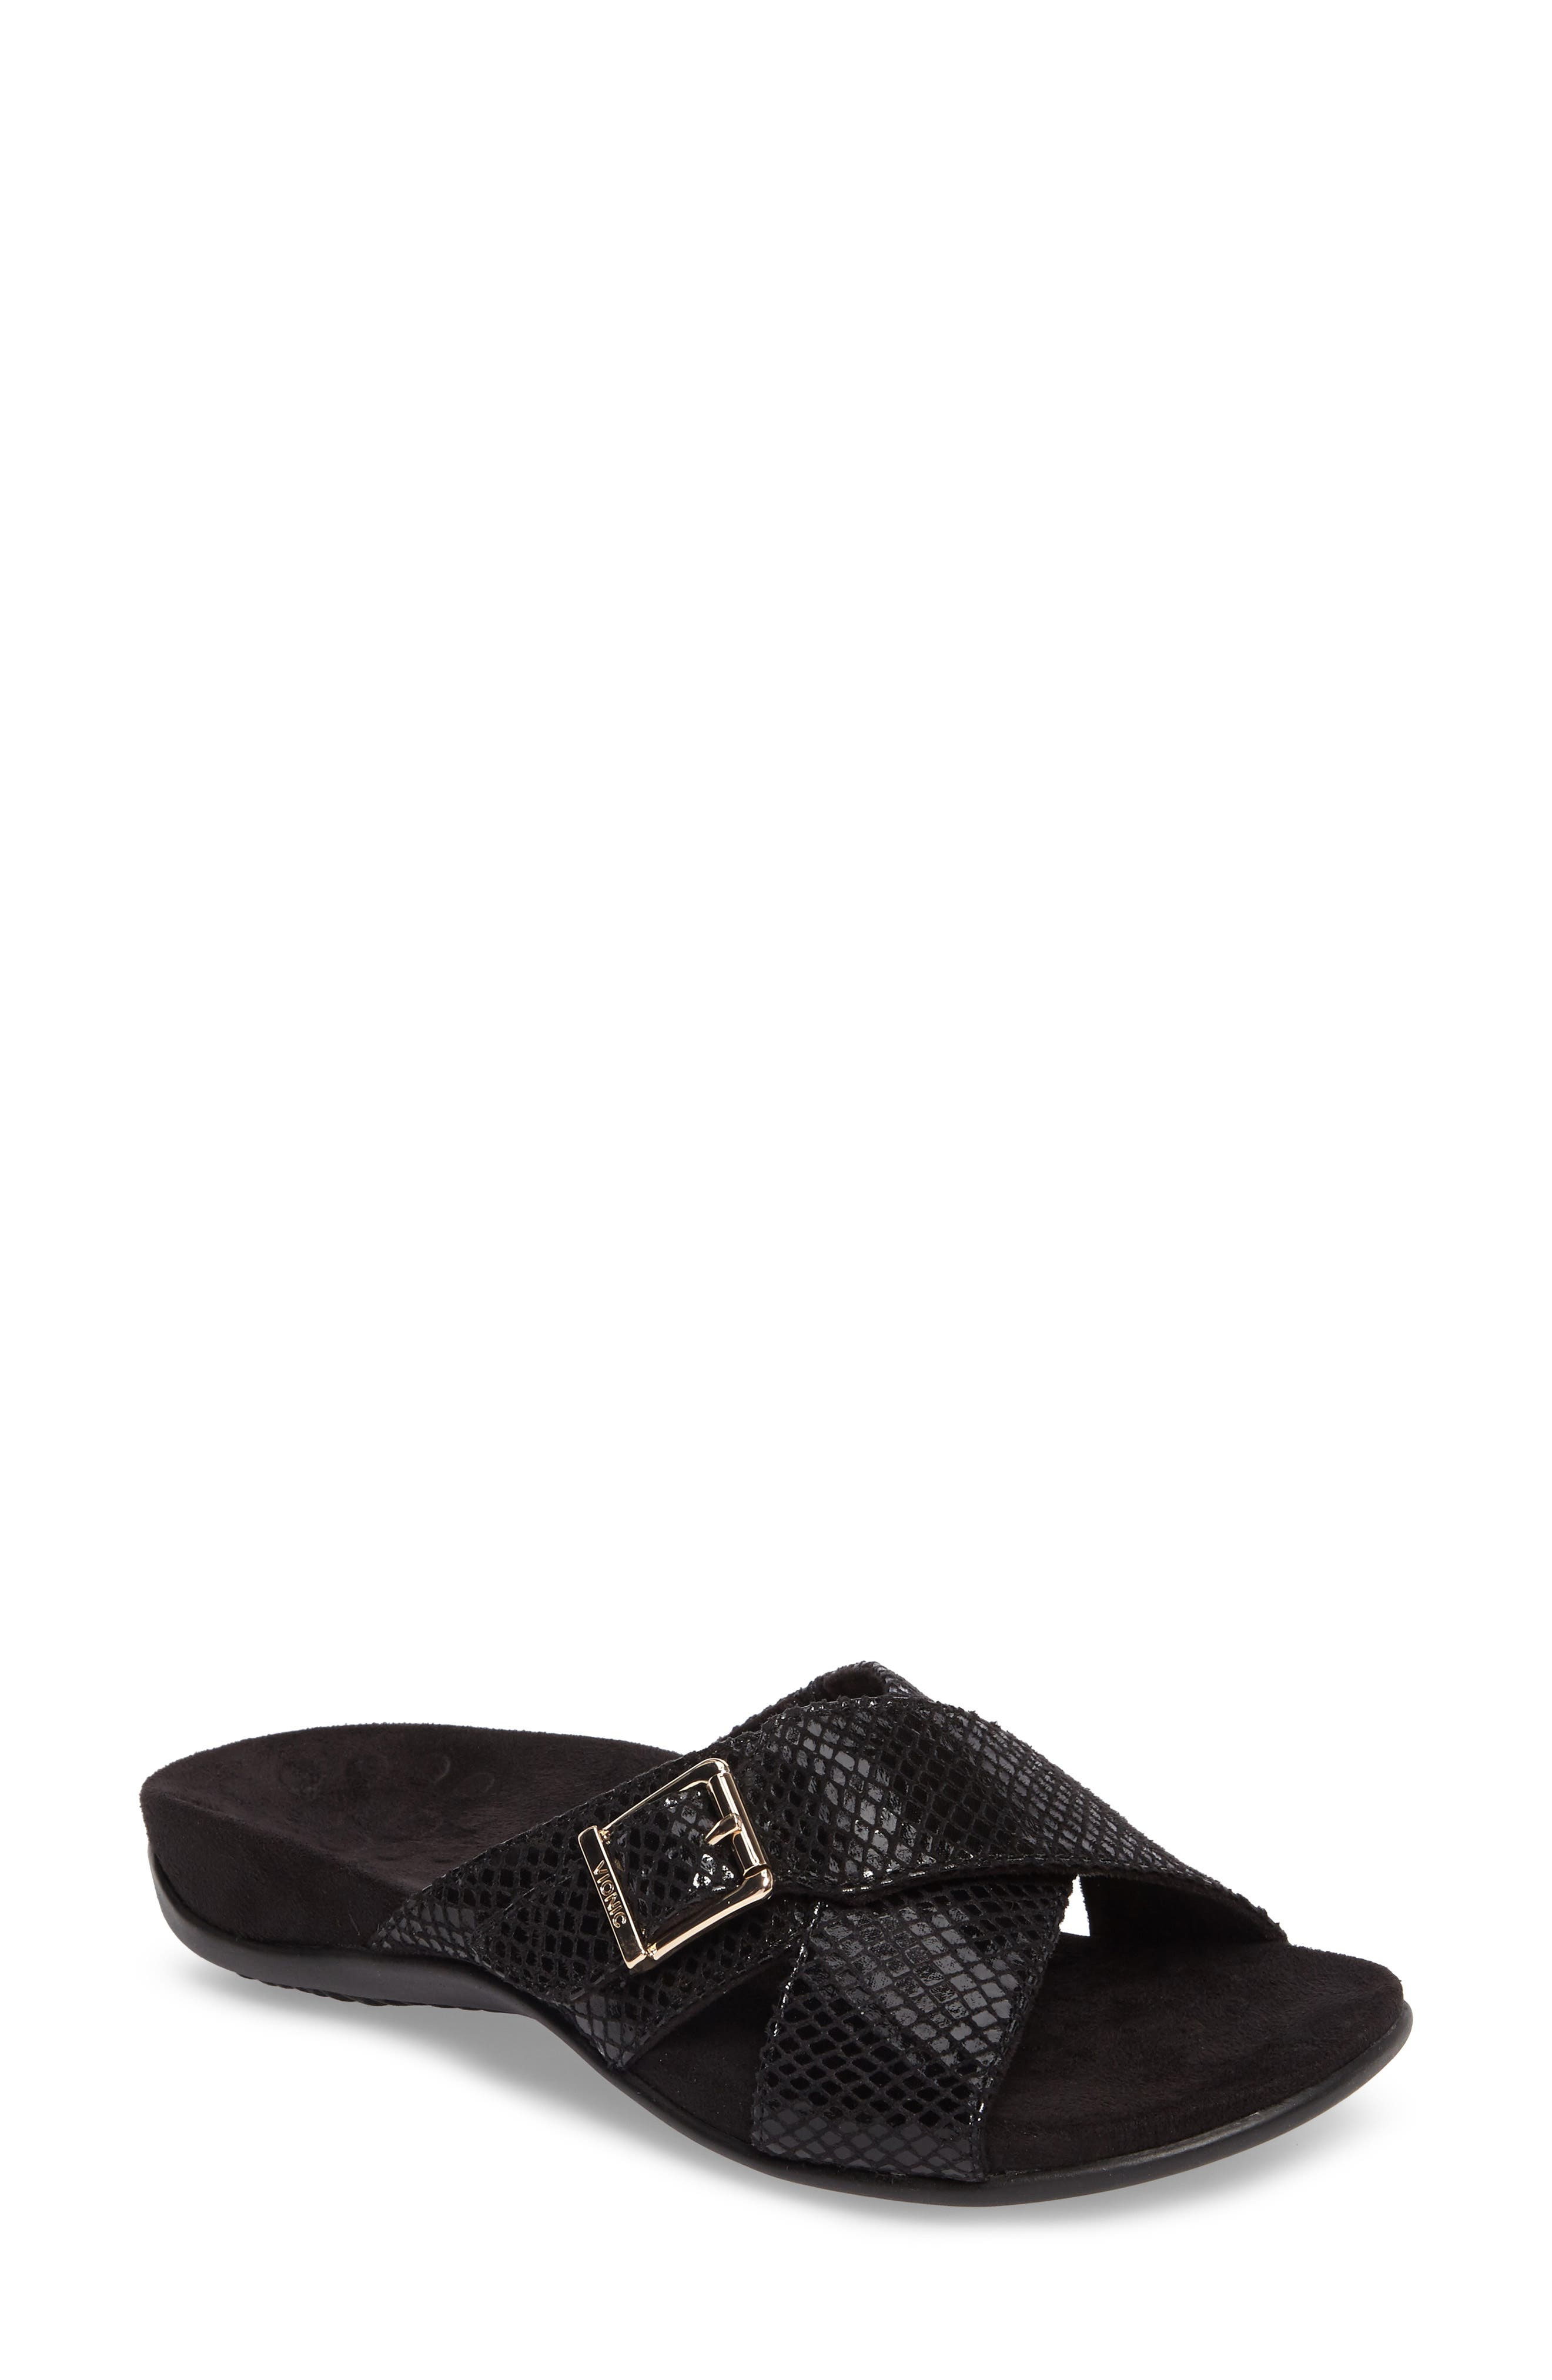 Dorie Cross Strap Slide Sandal,                             Main thumbnail 1, color,                             BLACK SNAKE FAUX LEATHER